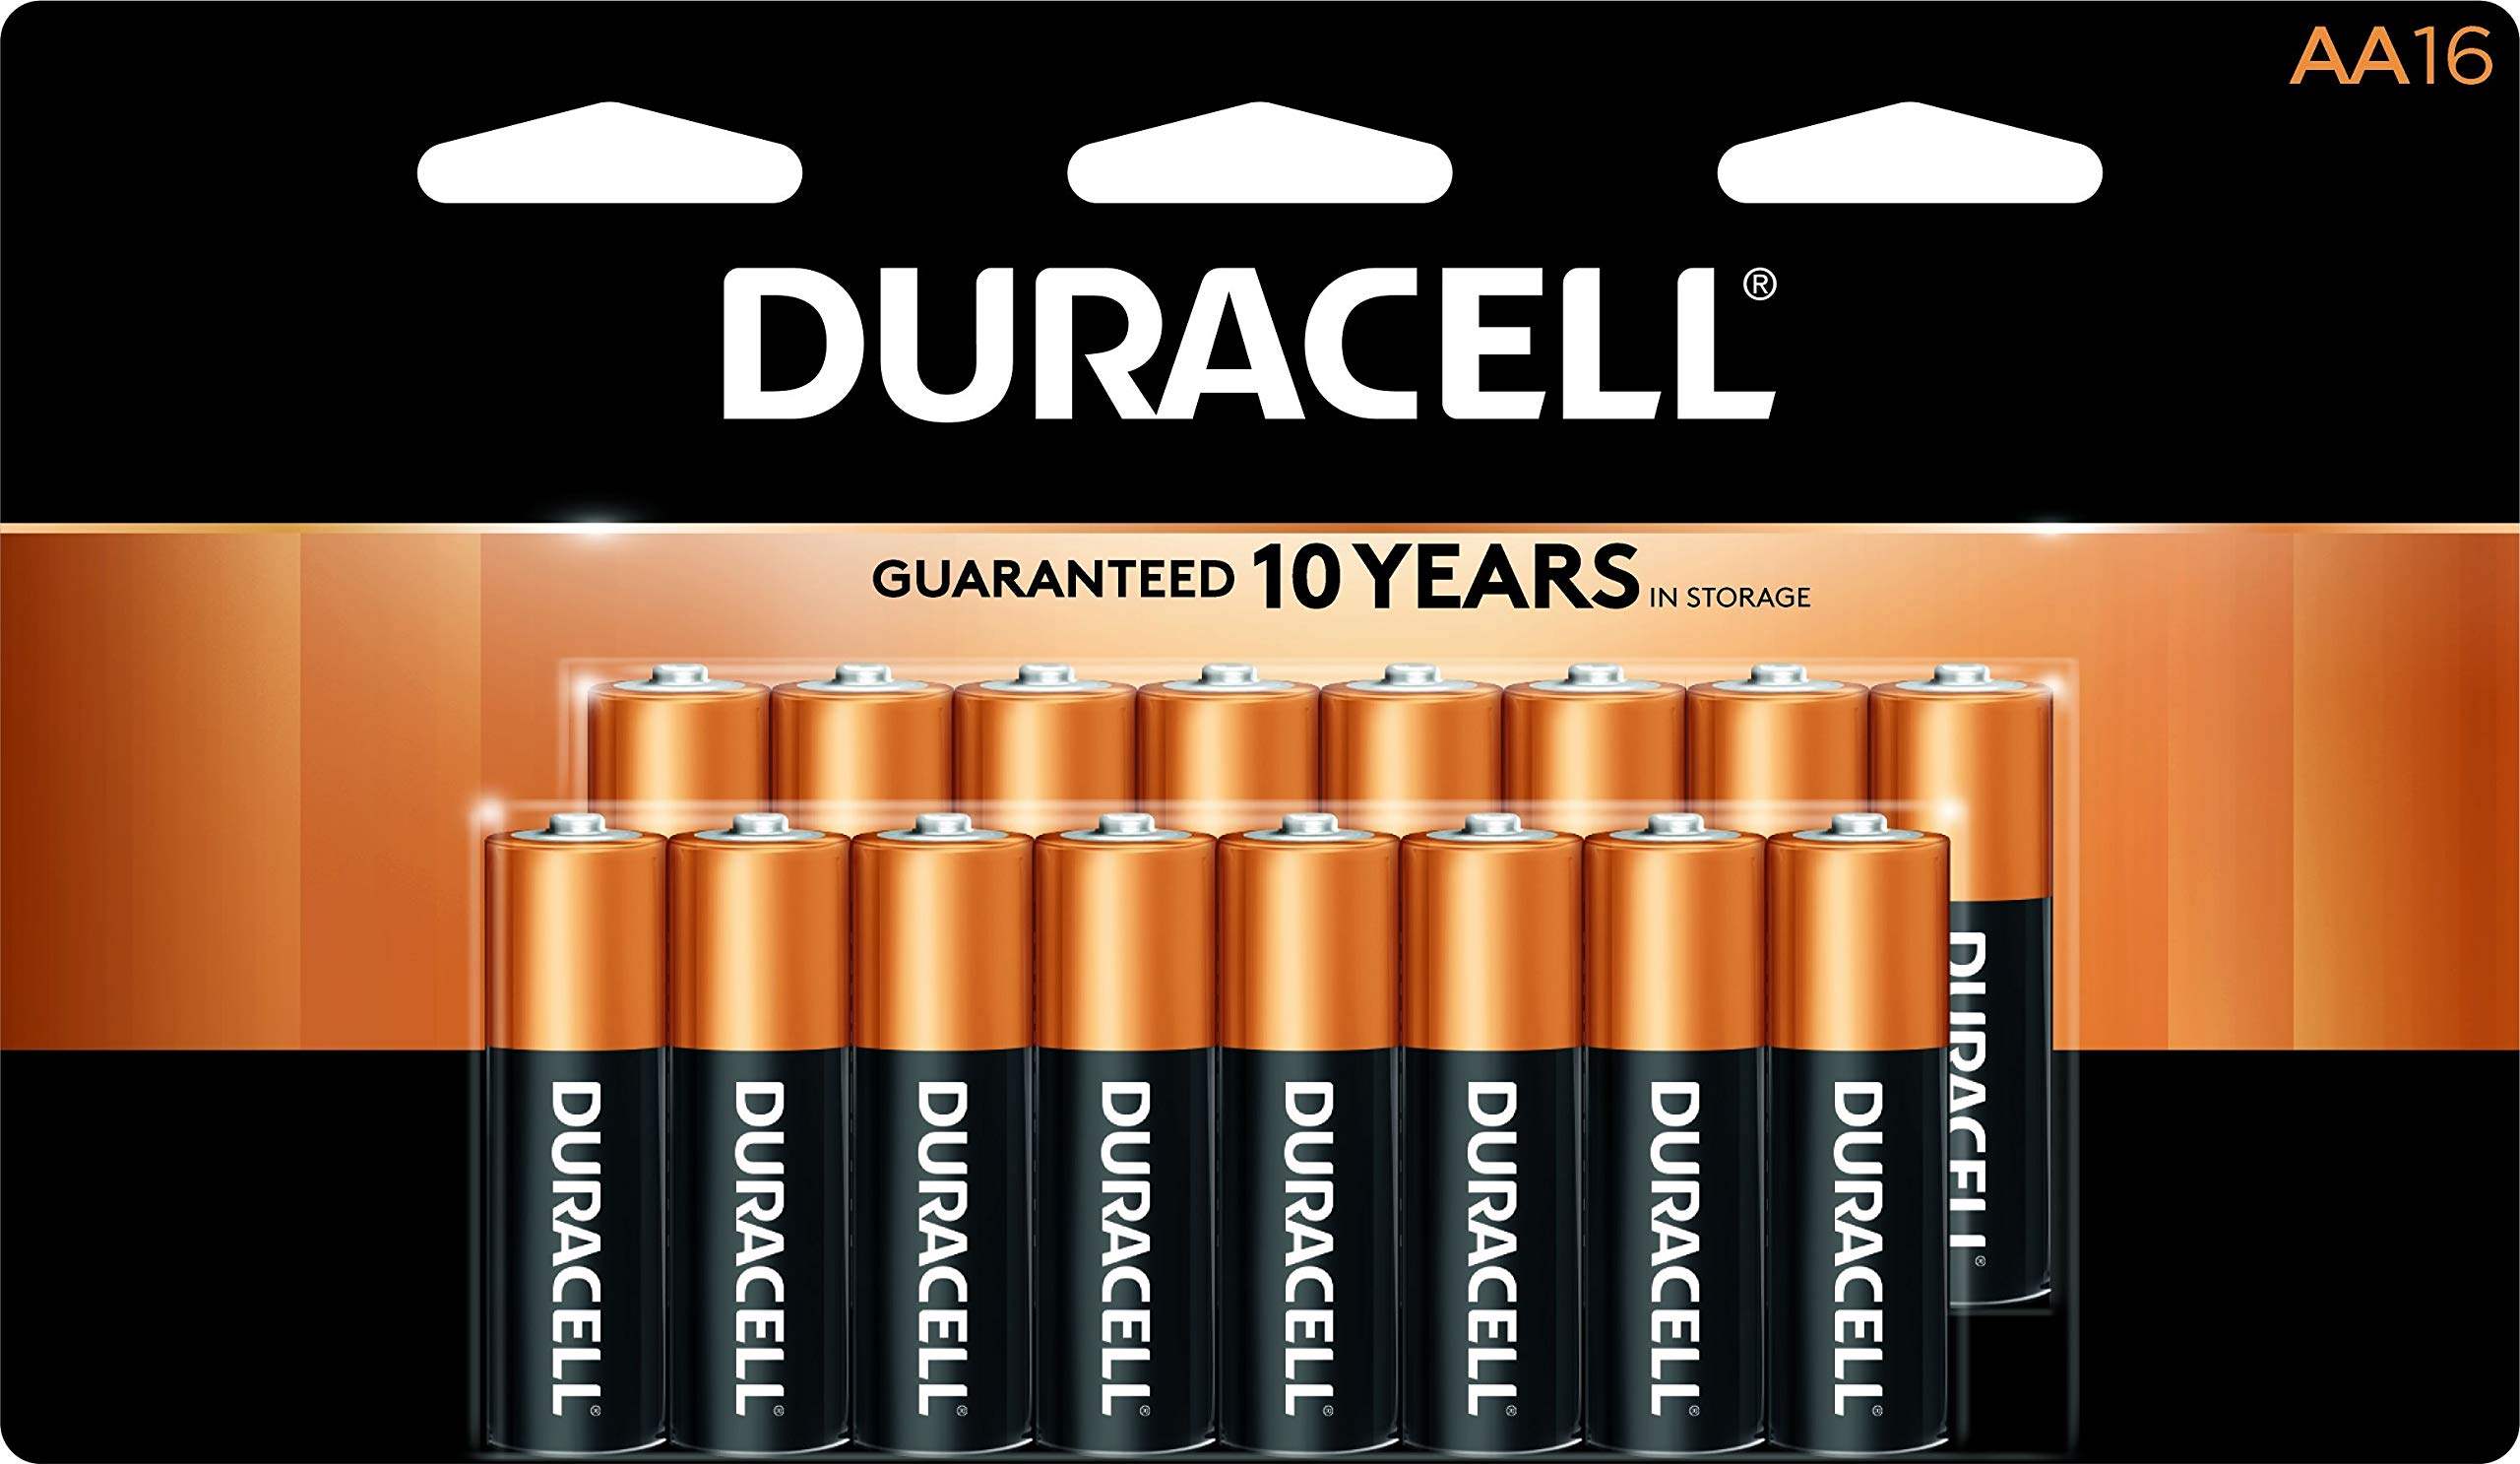 Duracell - CopperTop AA Alkaline Batteries - long lasting, all-purpose Double A battery for household and business - 16 Count by Duracell